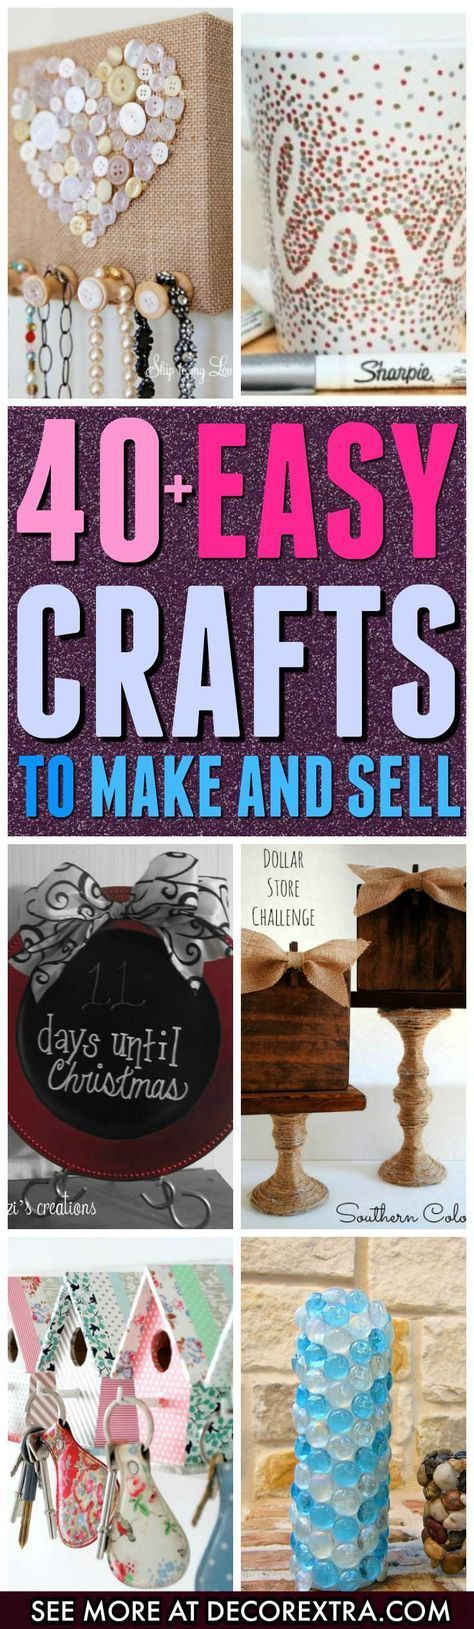 Crafts to Make and Sell.You can make lots ofdifferent type of things with cheap items andyou can get started selling your crafts on Etsy or other stores, so in this article we present you one collection of 40+ AMAZING Crafts to Make and Sell. Formore inspiration, see our popular posts on 20+ DIY Pallet Projects …